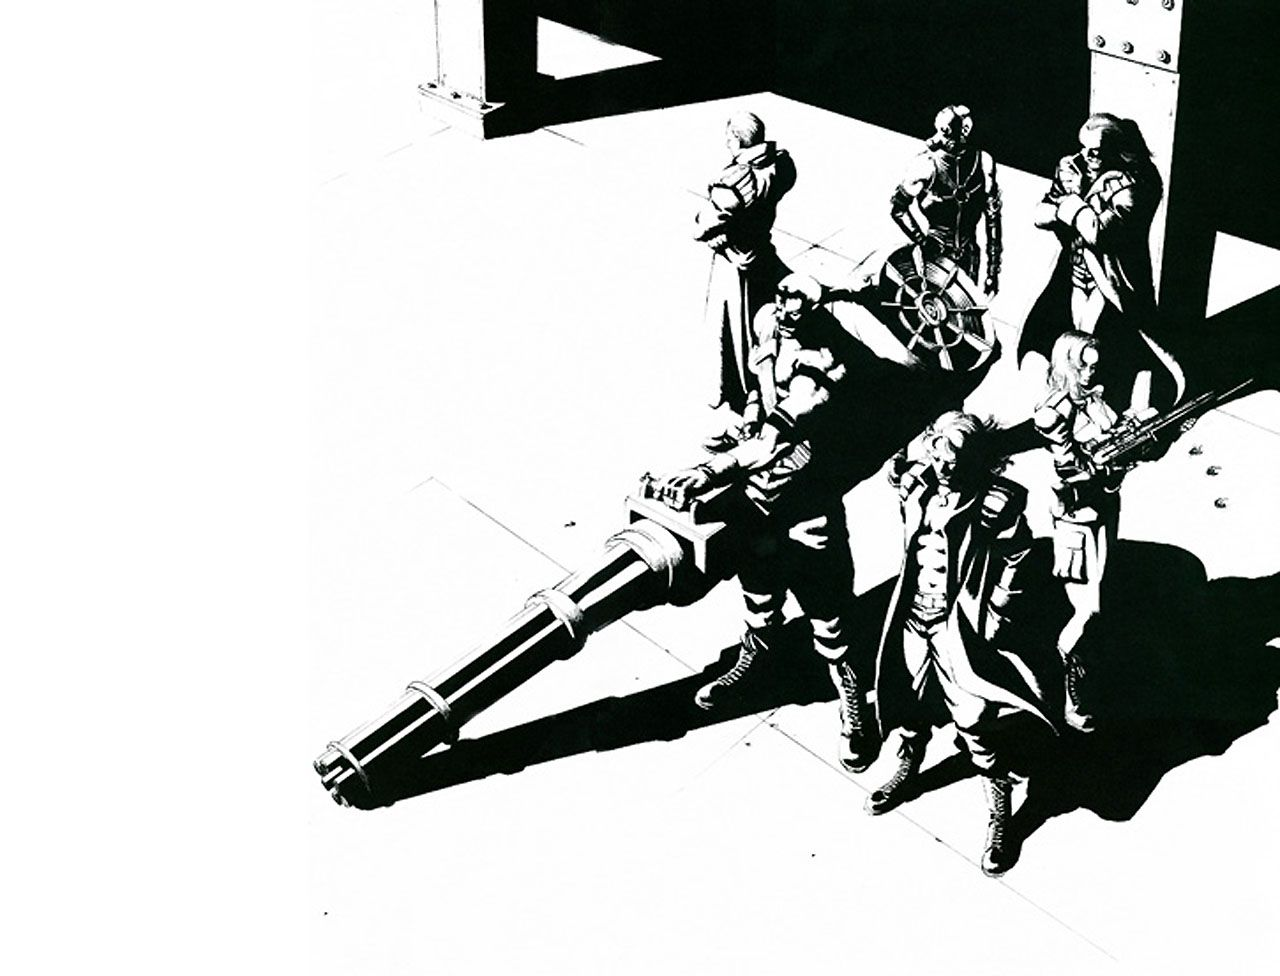 Metal Gear Solid 4 Wallpaper Metal Gear Rex Metal Gear Solid